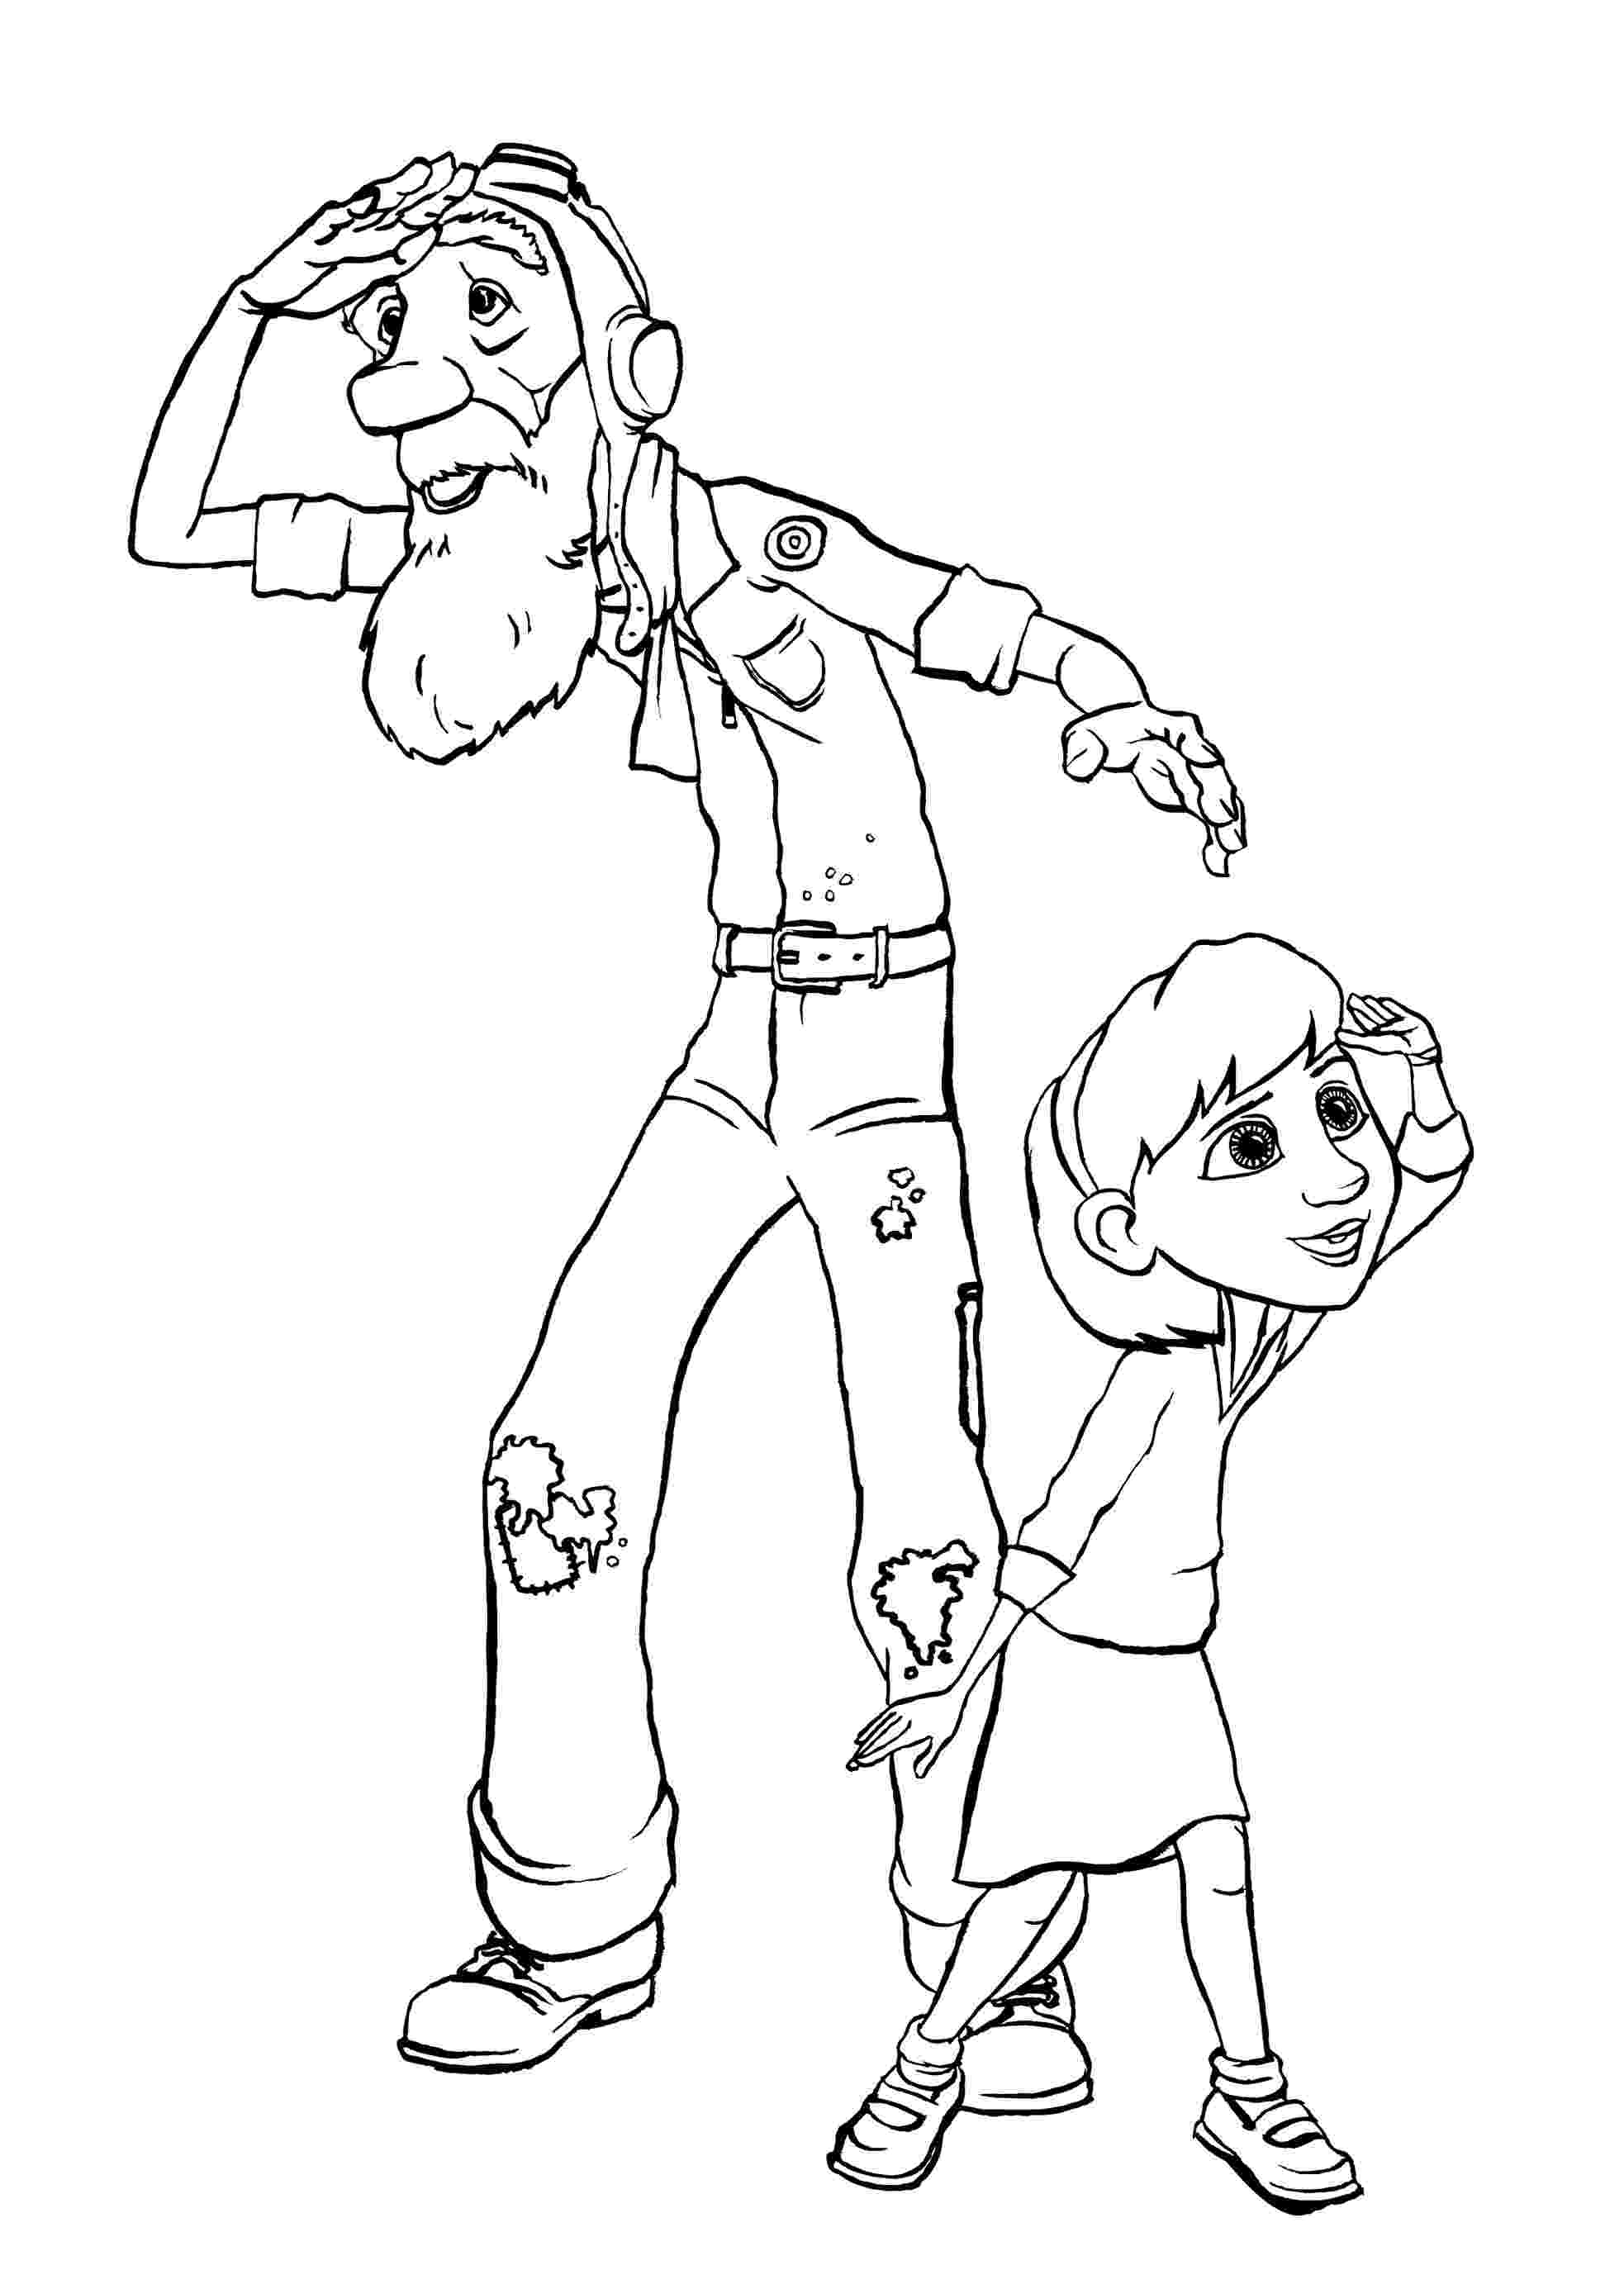 le coloring sheet le petit prince coloring pages to download and print for free coloring sheet le